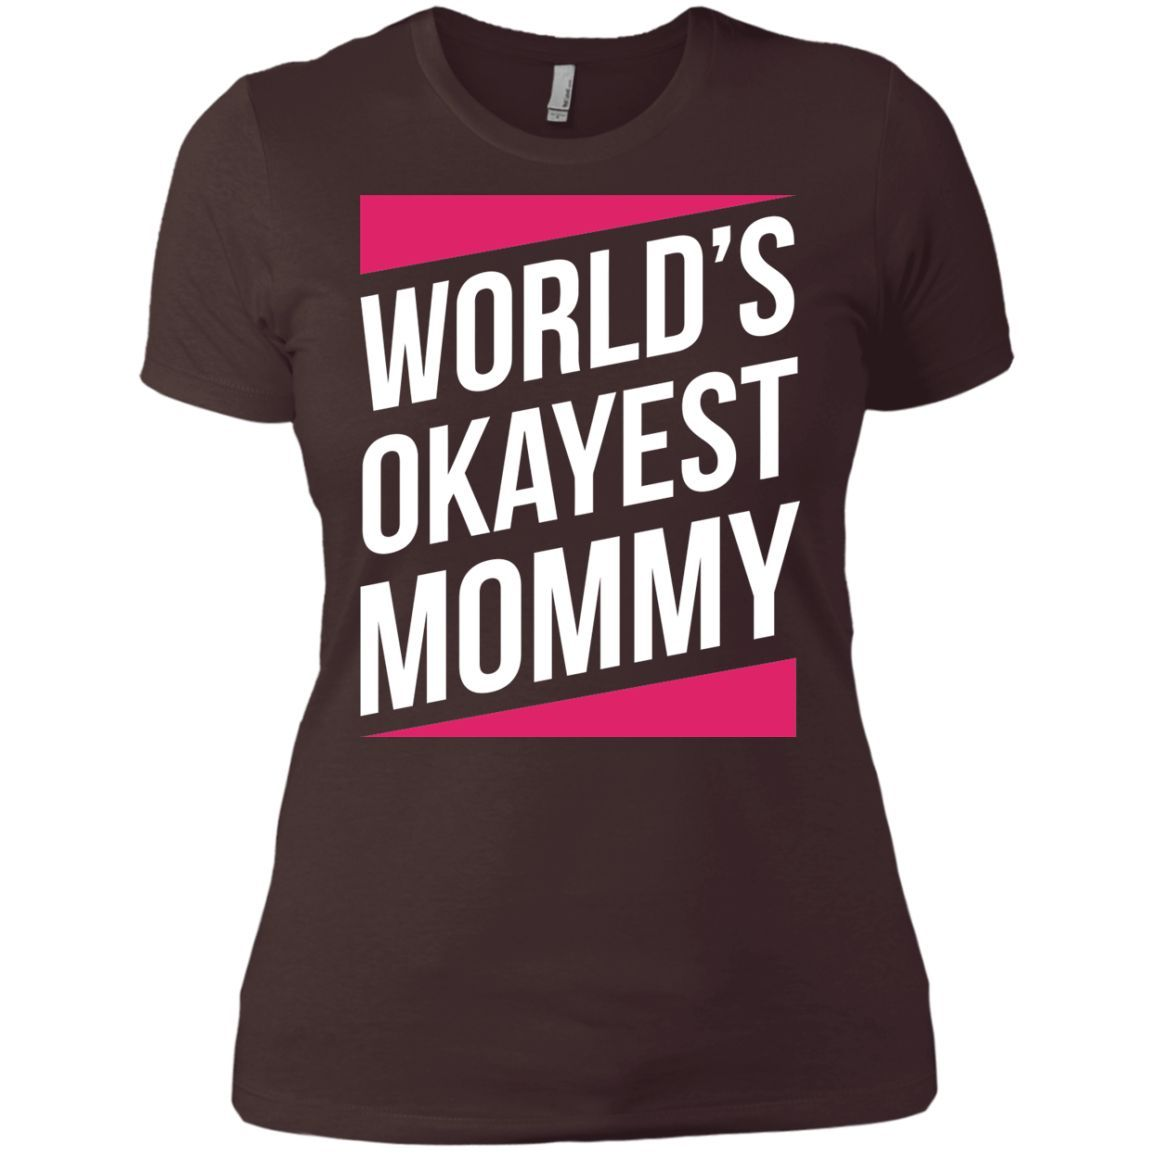 World's Okayest Mommy Mother's day gifts Next Level Ladies' Boyfriend Tee